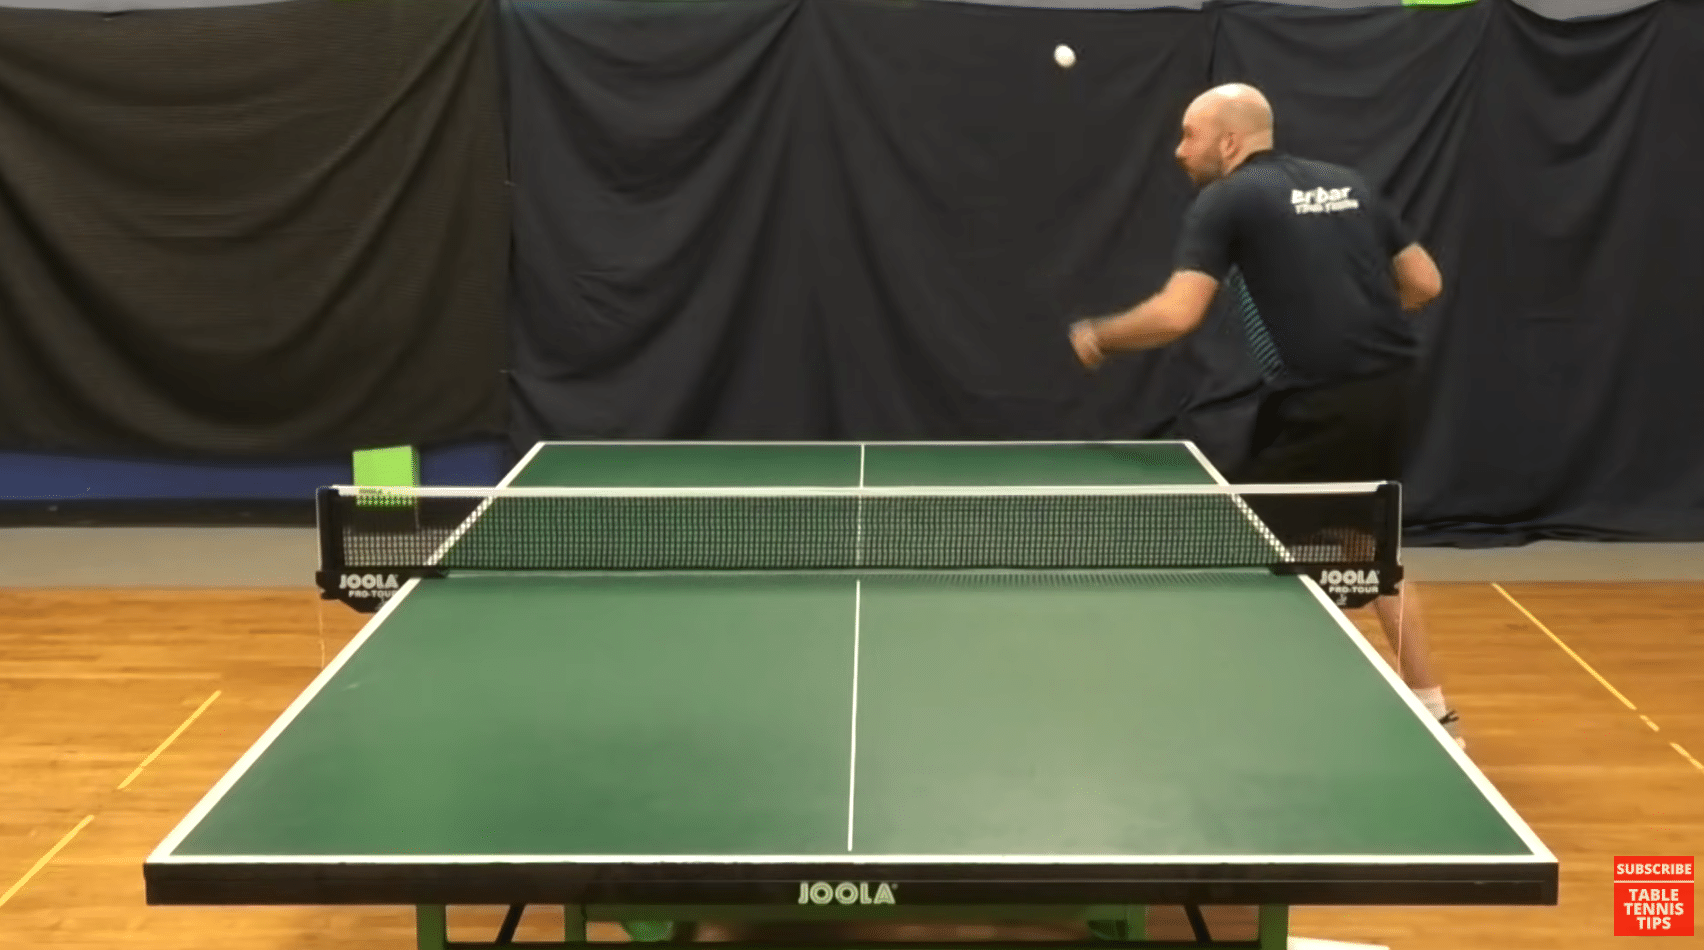 throwing serve in the air